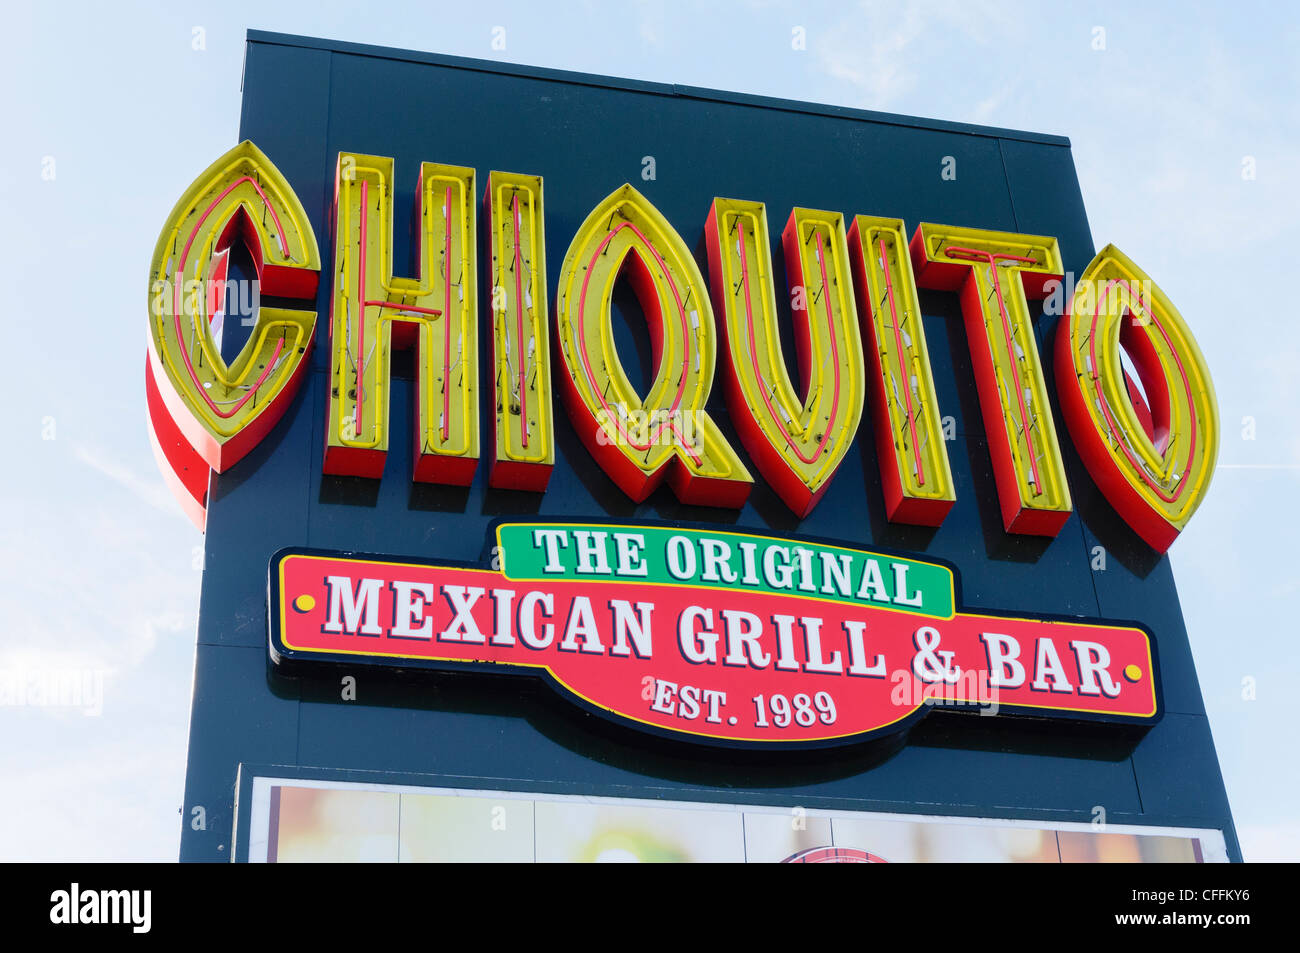 Sign for Chiquito mexican grill and bar Stock Photo